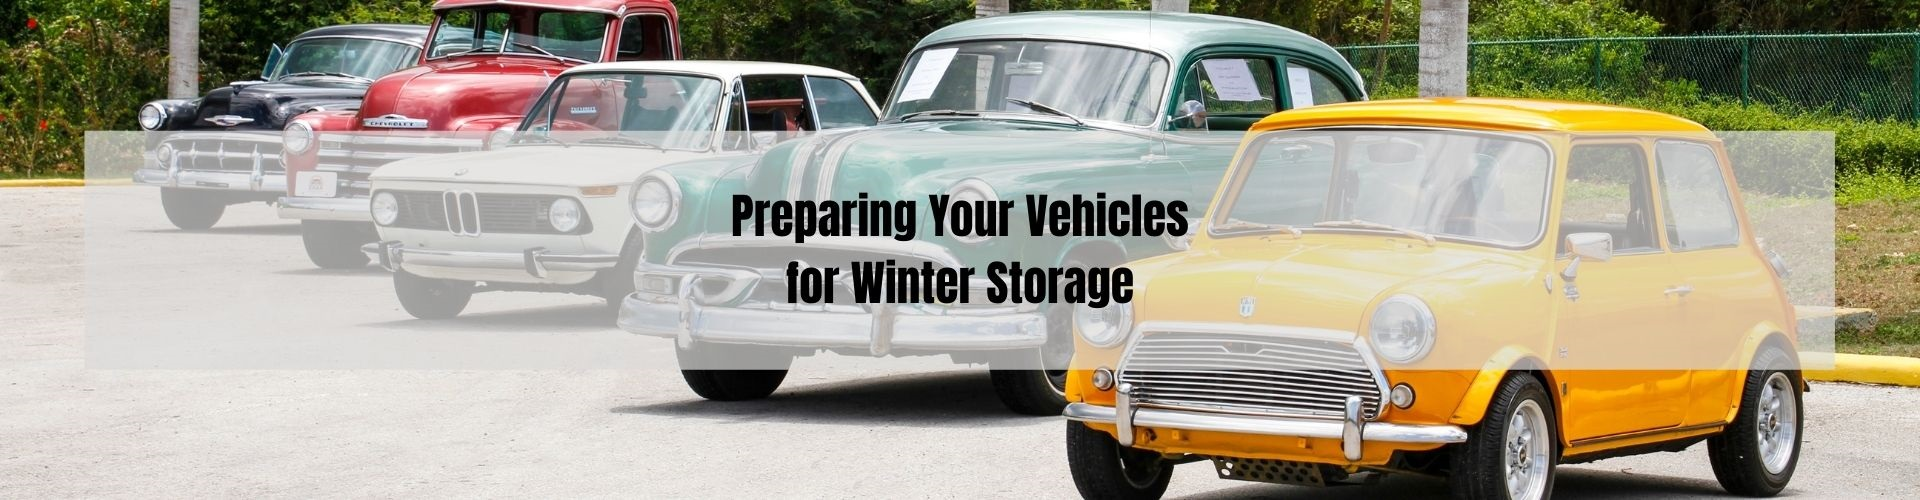 Storing Winter Vehicle